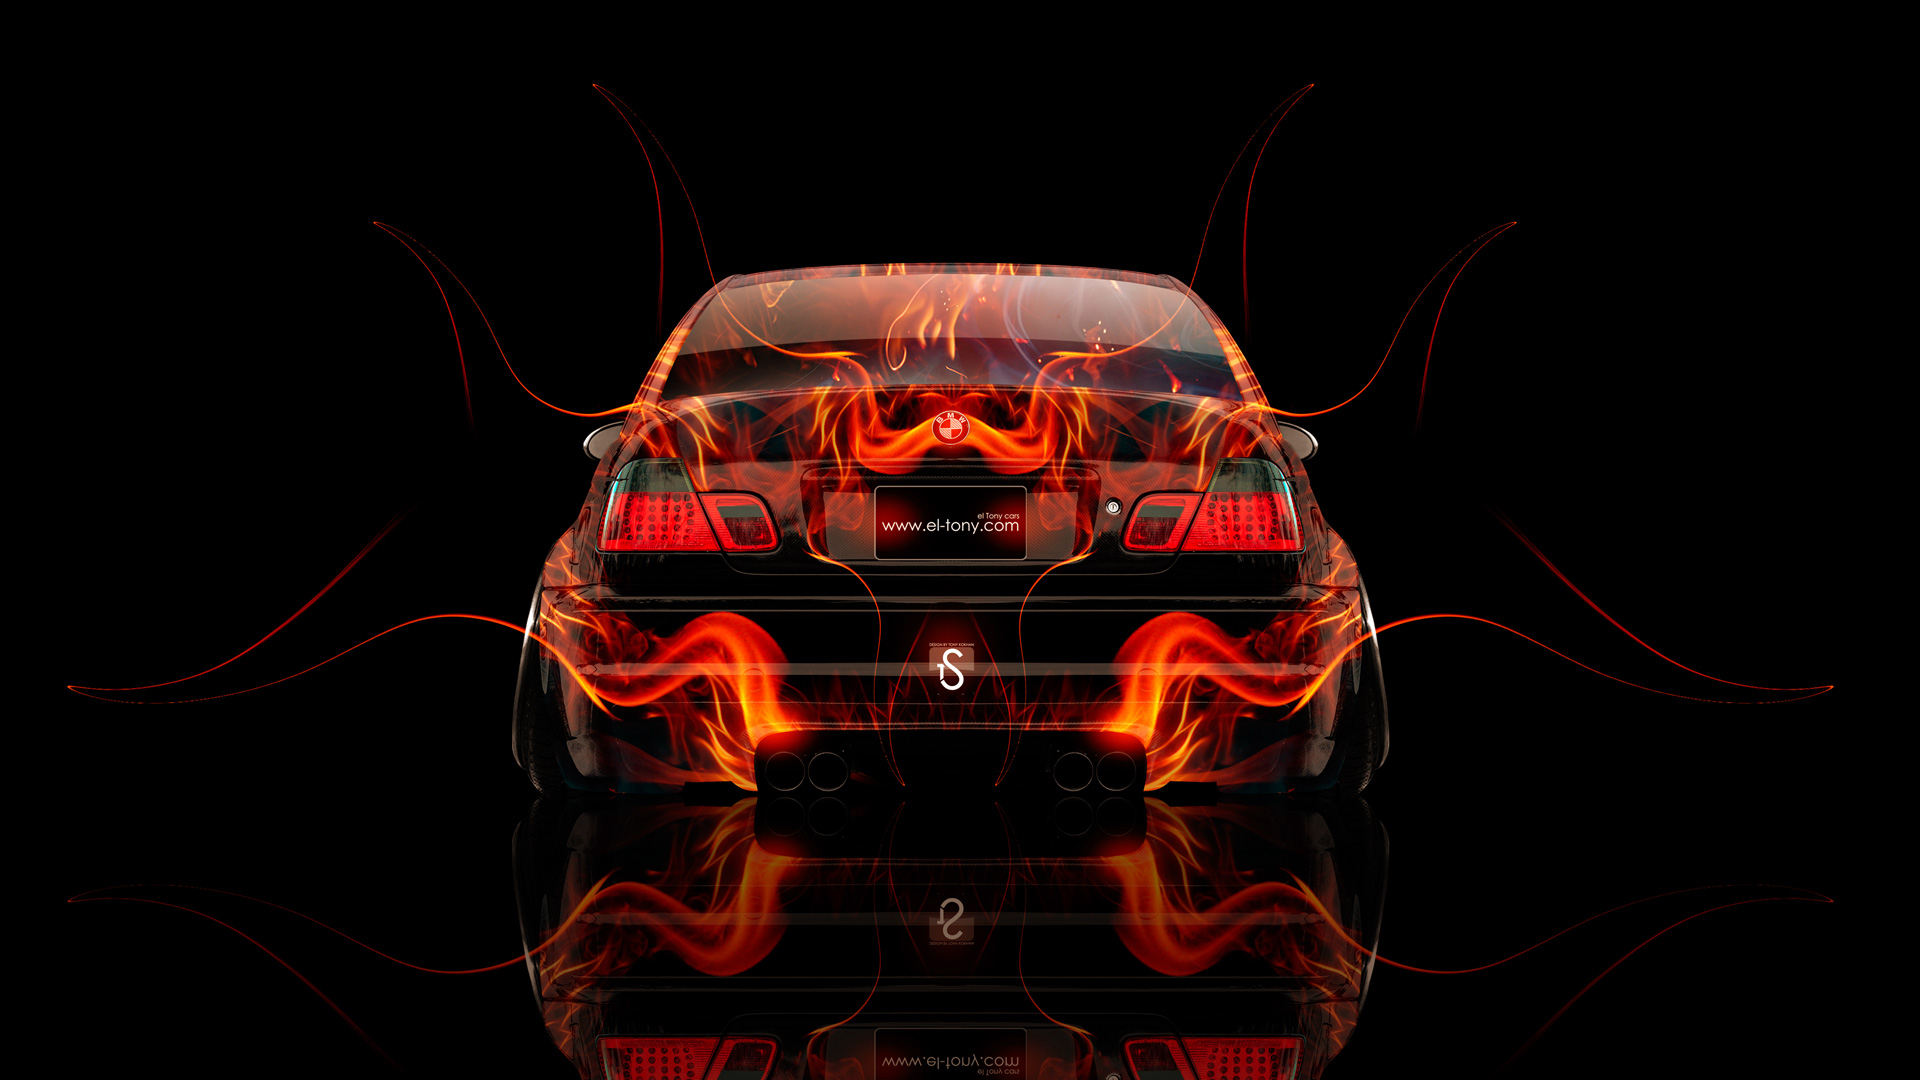 BMW M3 Back Fire Abstract Car 2014 HD